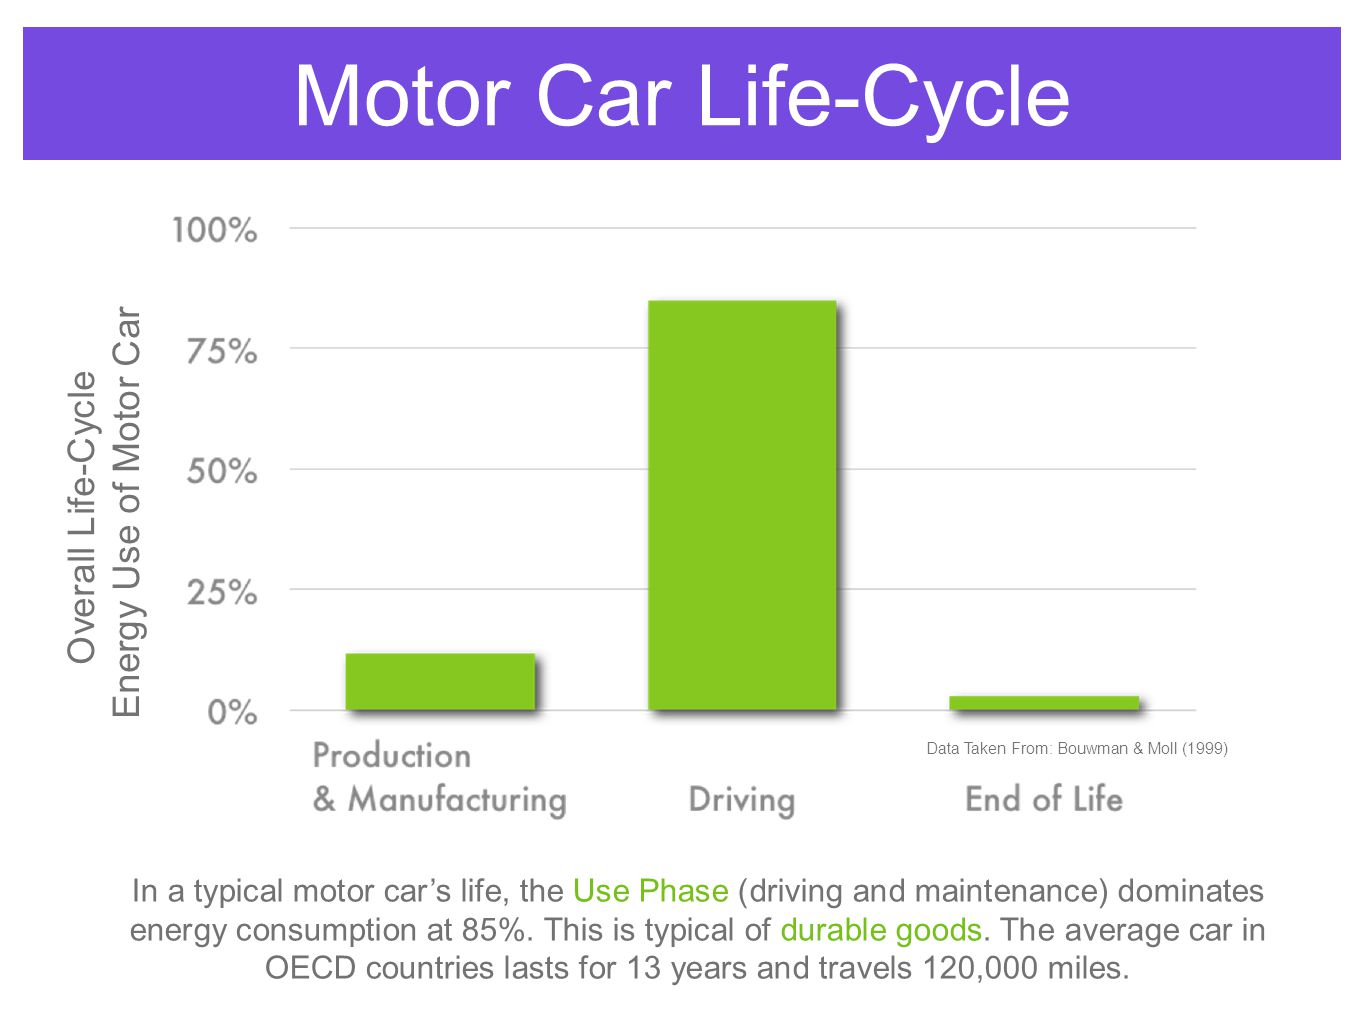 Motor Car Life-Cycle Data Taken From: Bouwman & Moll (1999) Overall Life-Cycle Energy Use of Motor Car In a typical motor car's life, the Use Phase (driving and maintenance) dominates energy consumption at 85%.